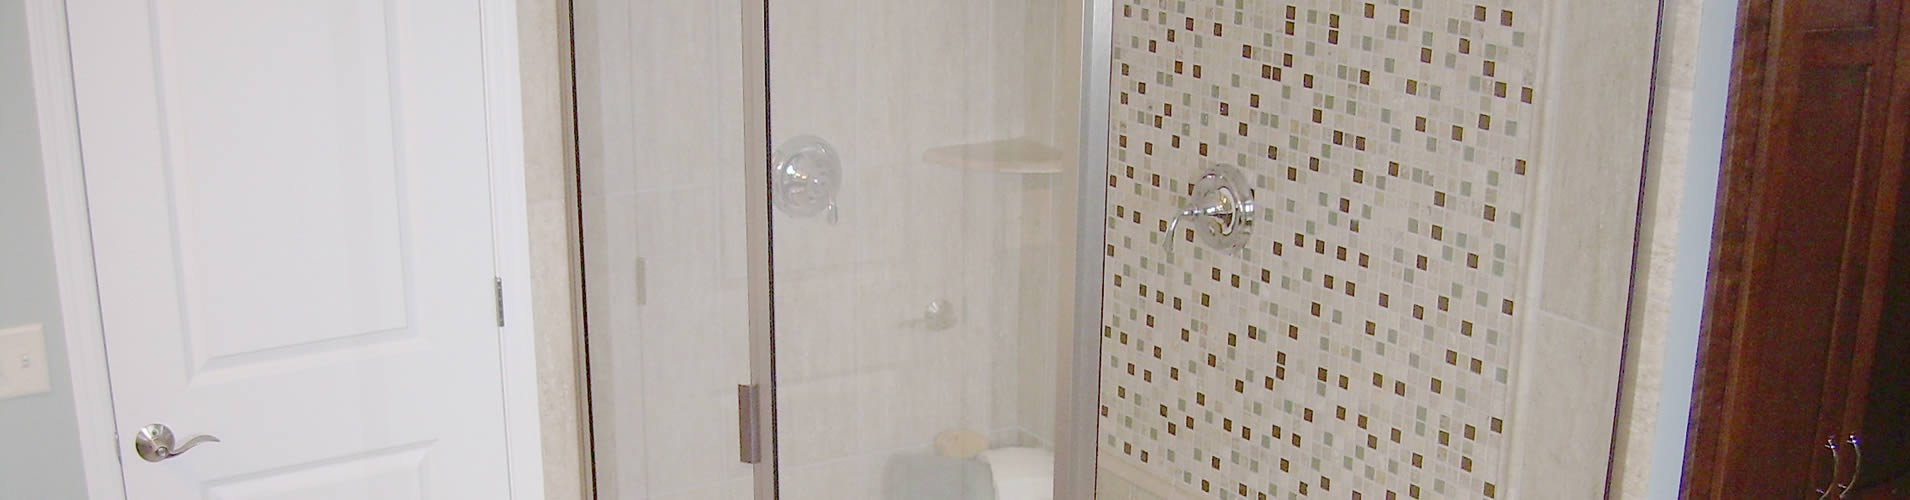 Shower Doors - Atlanta, Georgia